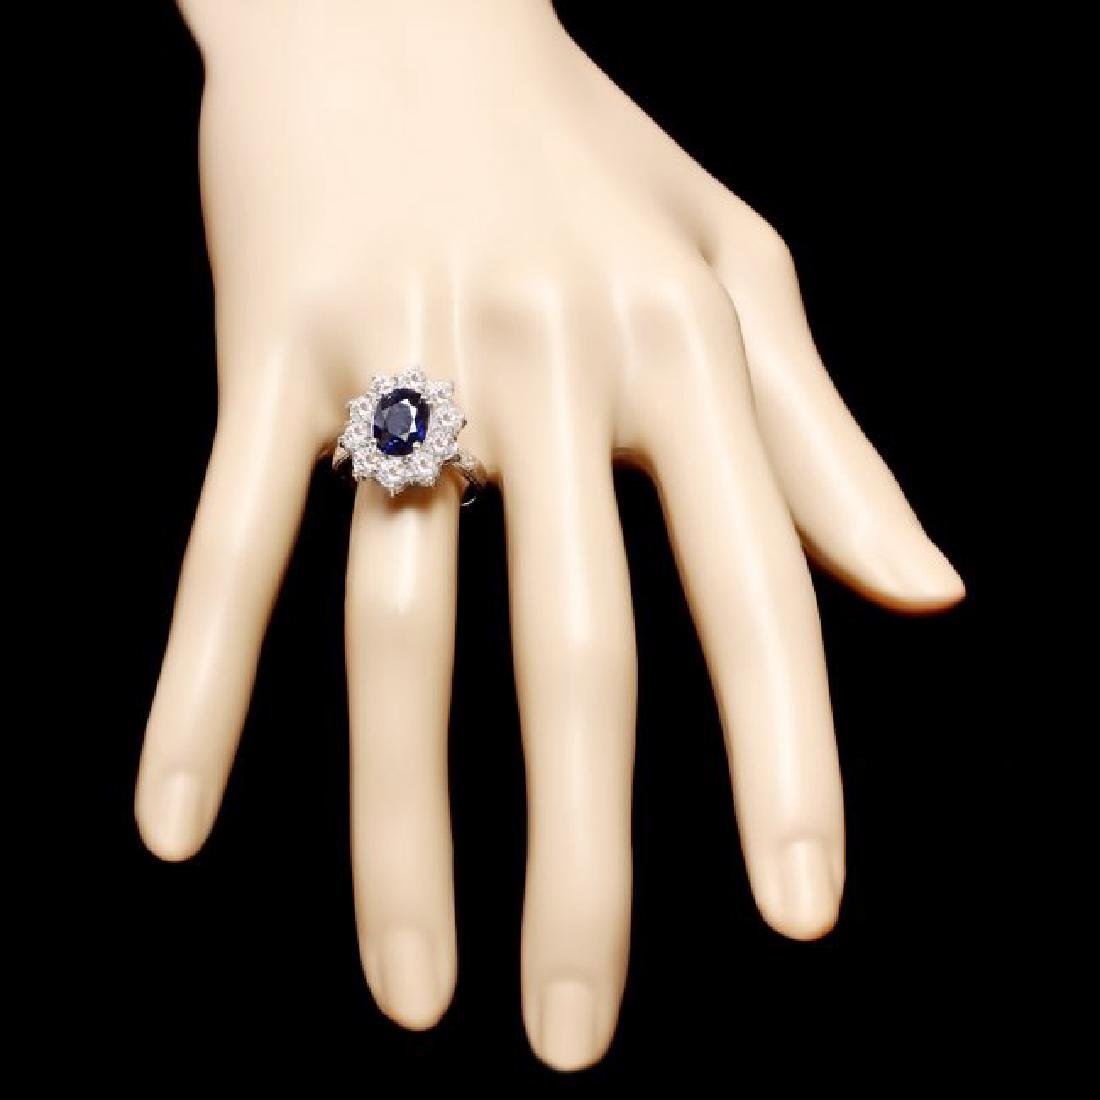 18k Gold 2.10ct Sapphire 2.10ct Diamond Ring - 4